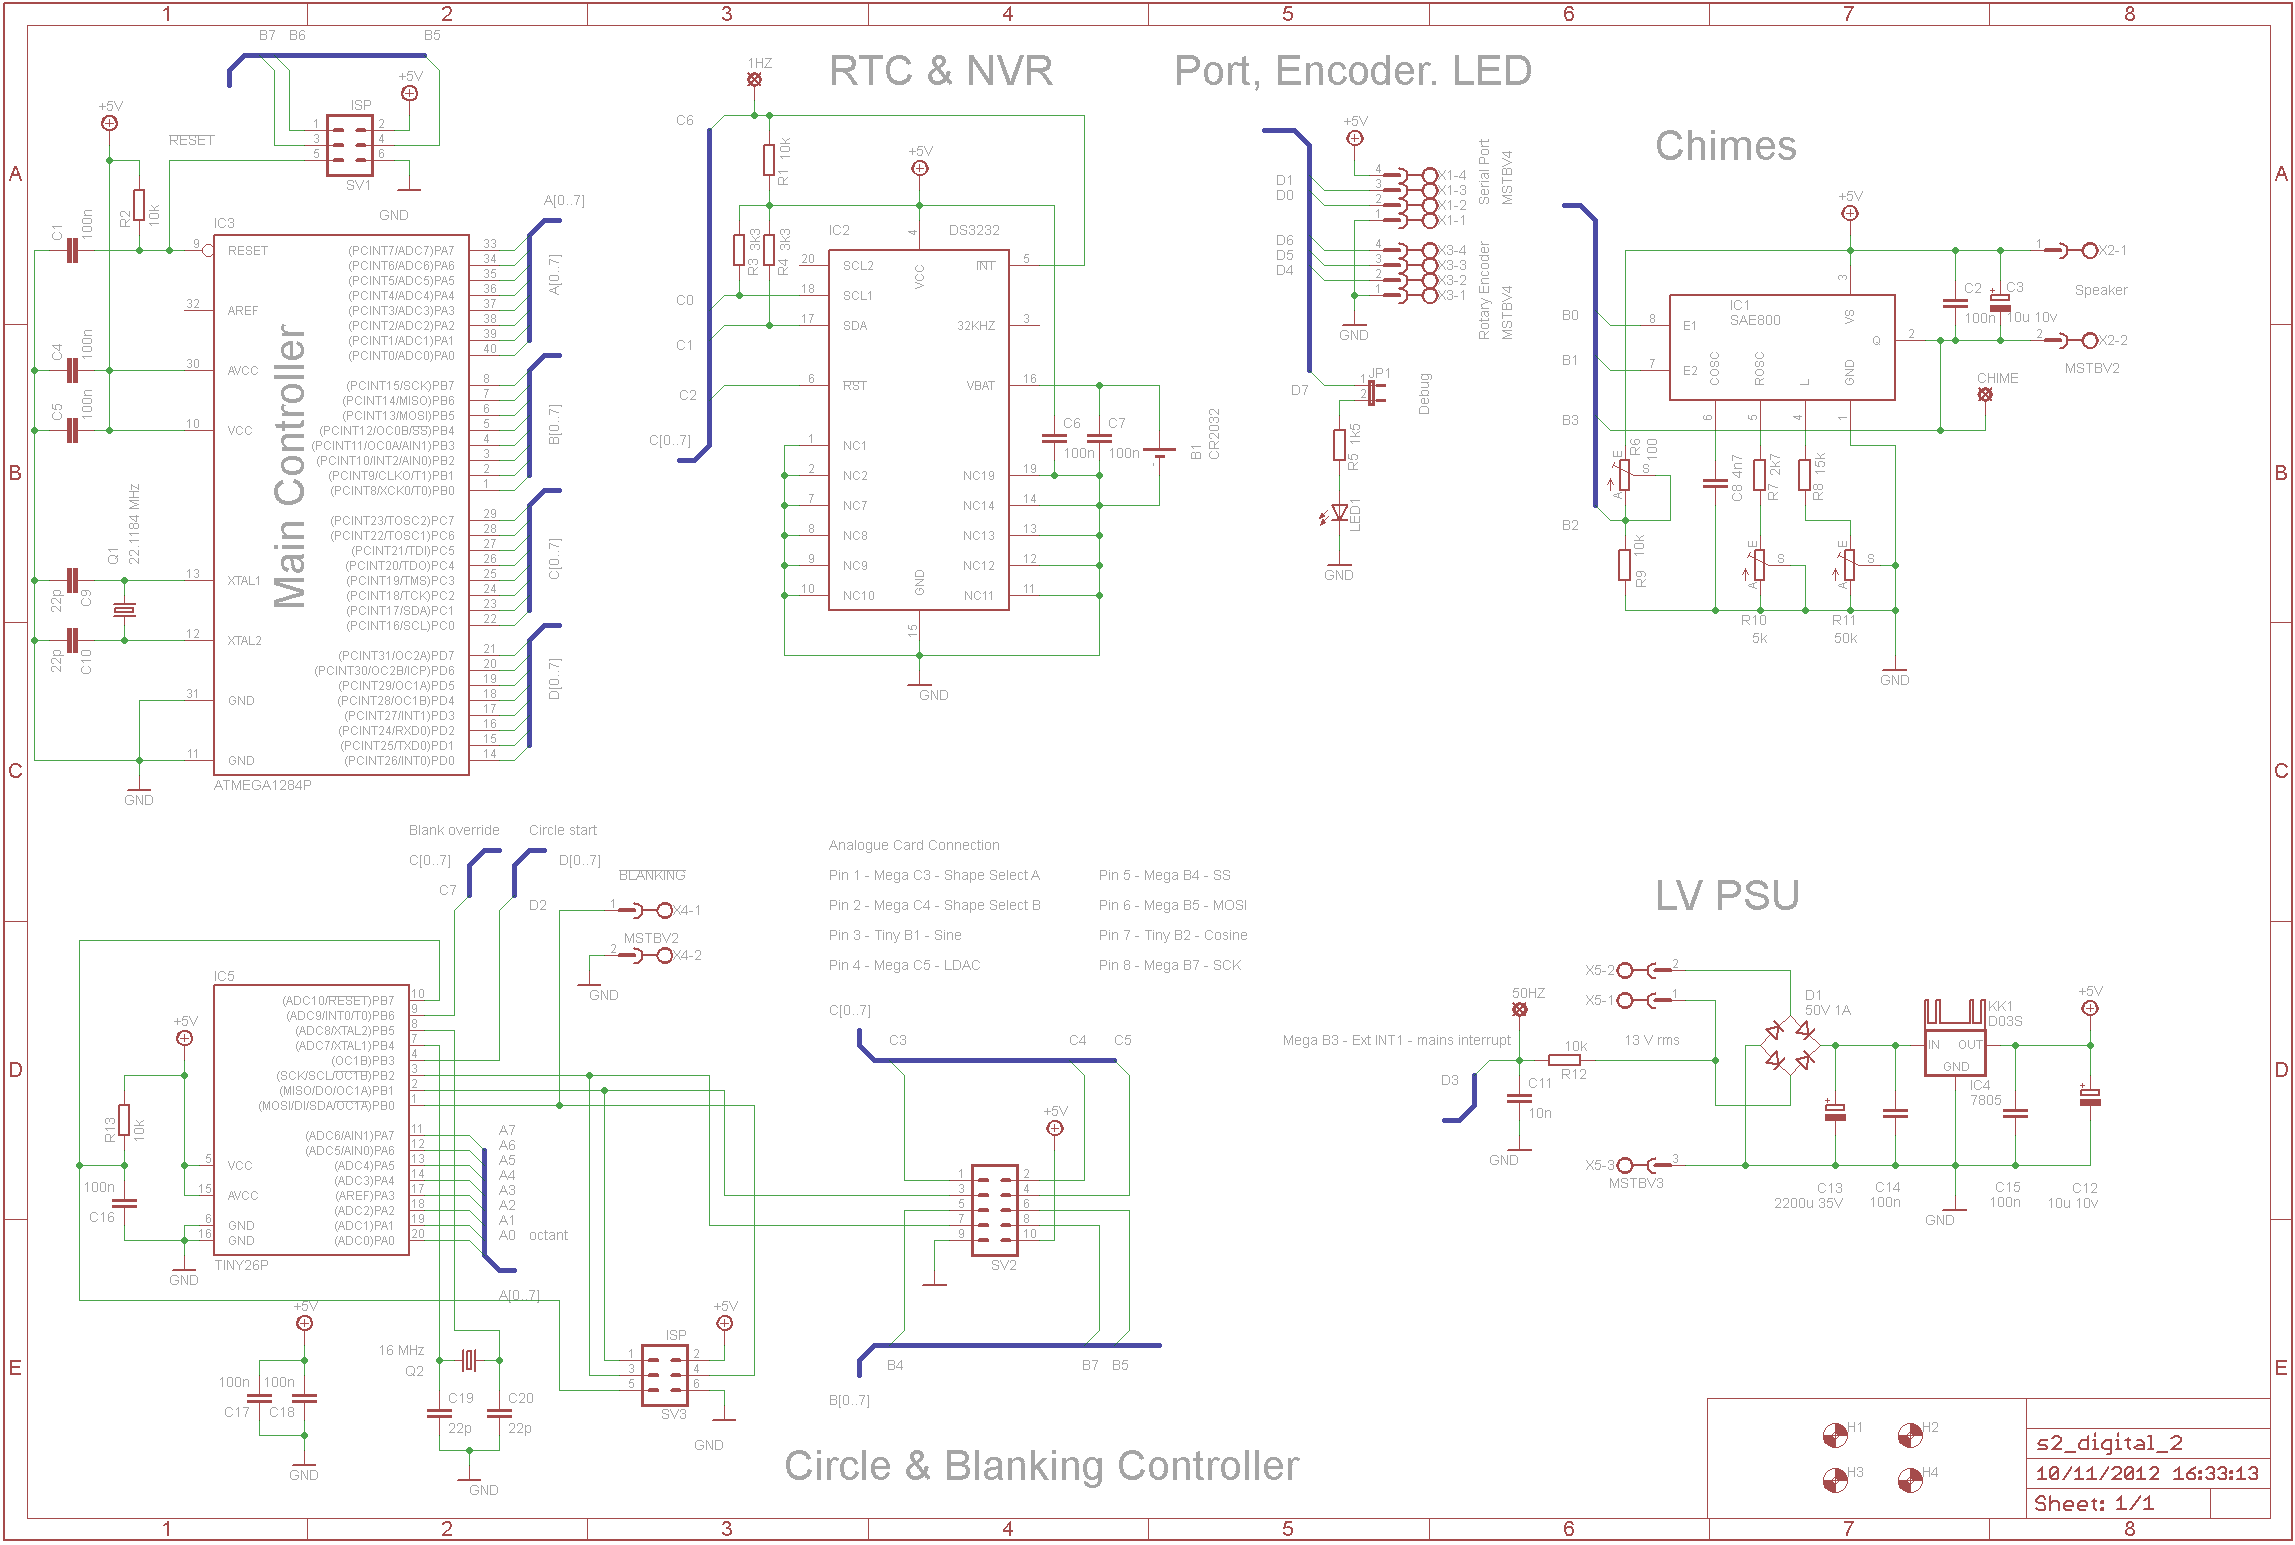 Sgitheach Nixieclock 1 Schematic And Sourcecode Availiable For Connections Are Mostly Made Using Wires On Pin Headers But The Connection To Analogue Card Is Idc Connectors A 10 Way Ribbon Cable